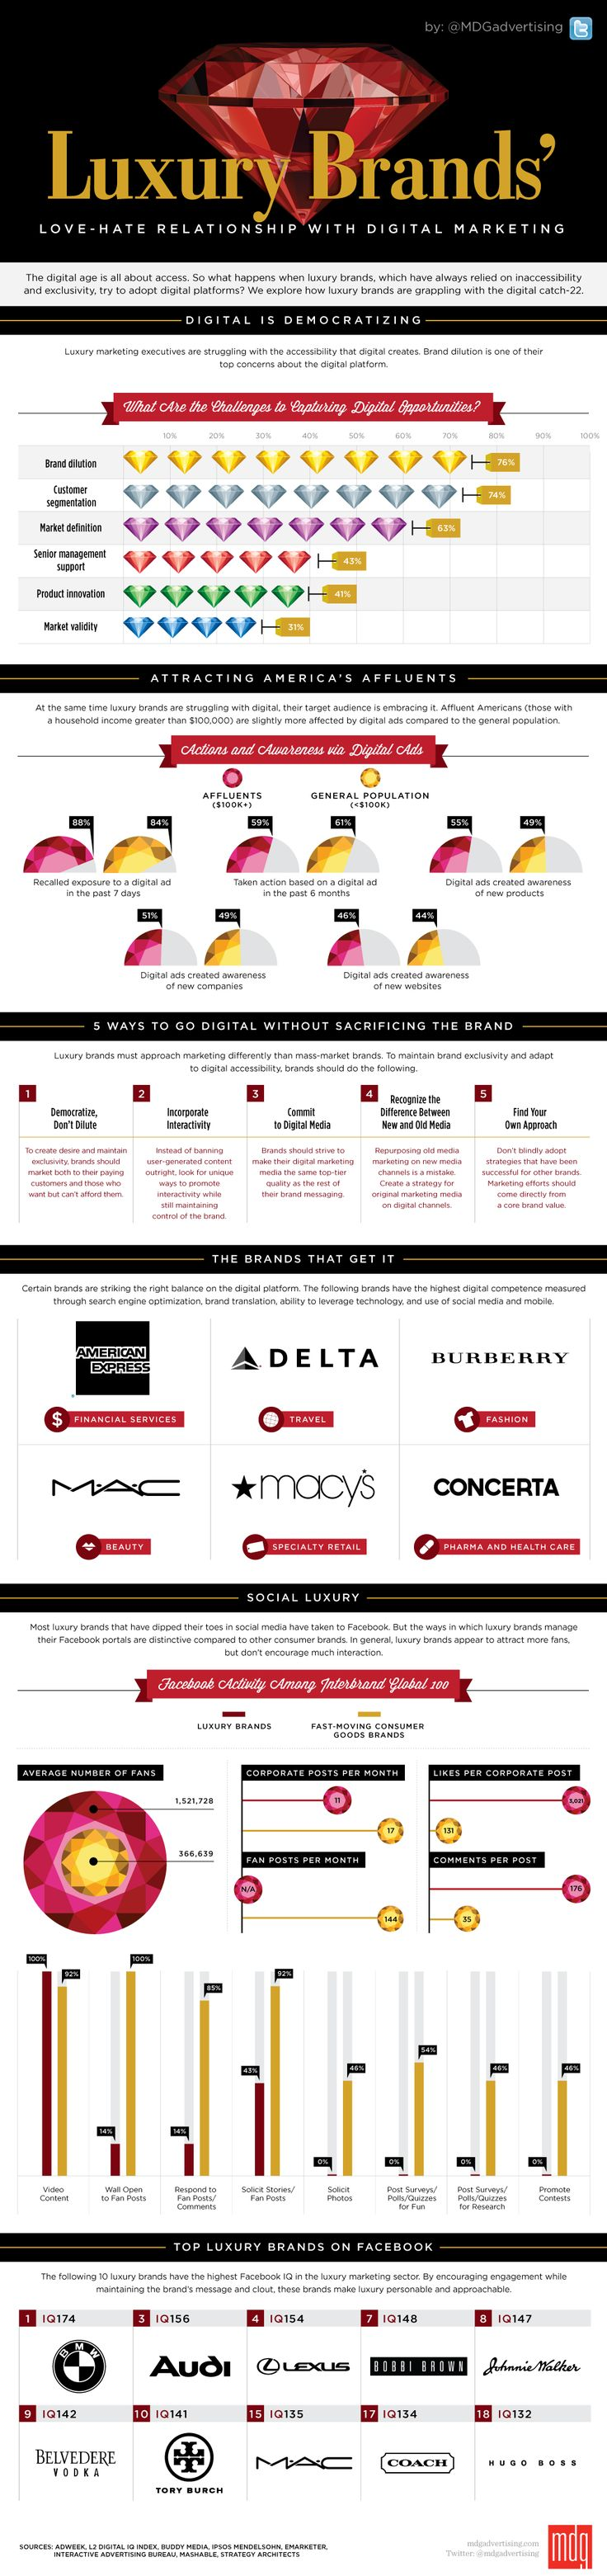 How exclusivity for luxury brands makes digital marketing a challenge